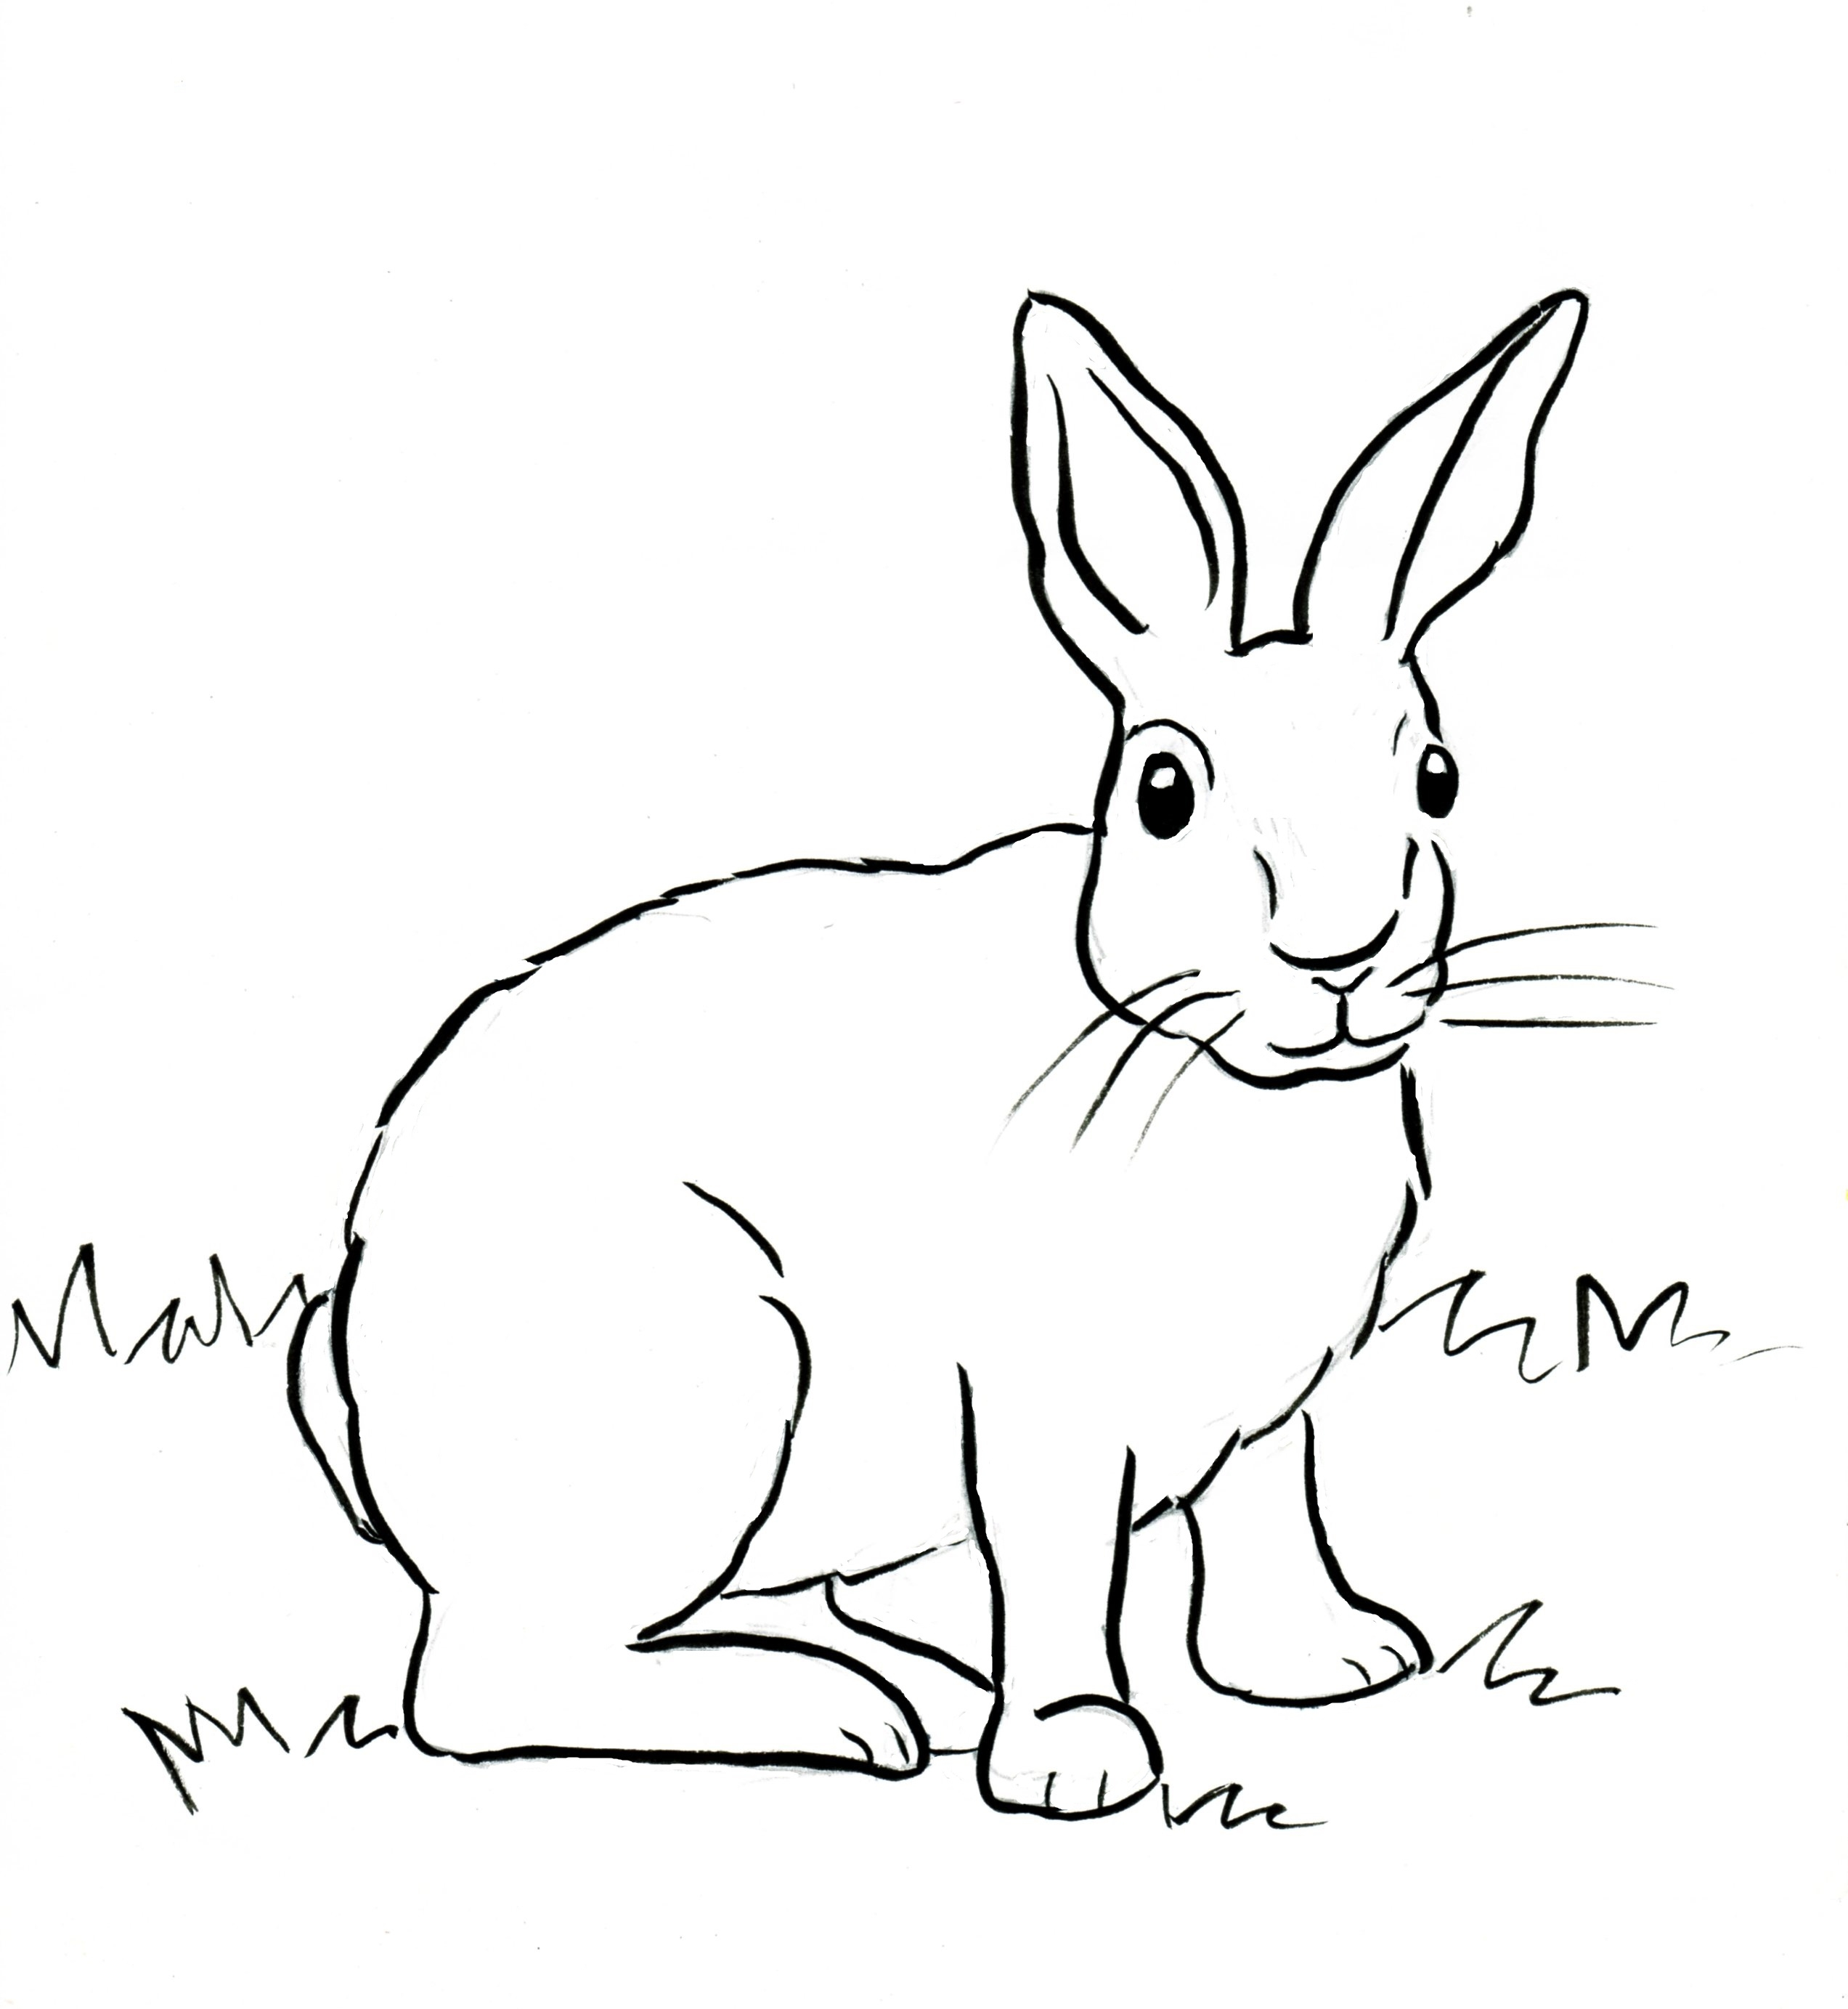 rabbit coloring pages - cottontail rabbit coloring page